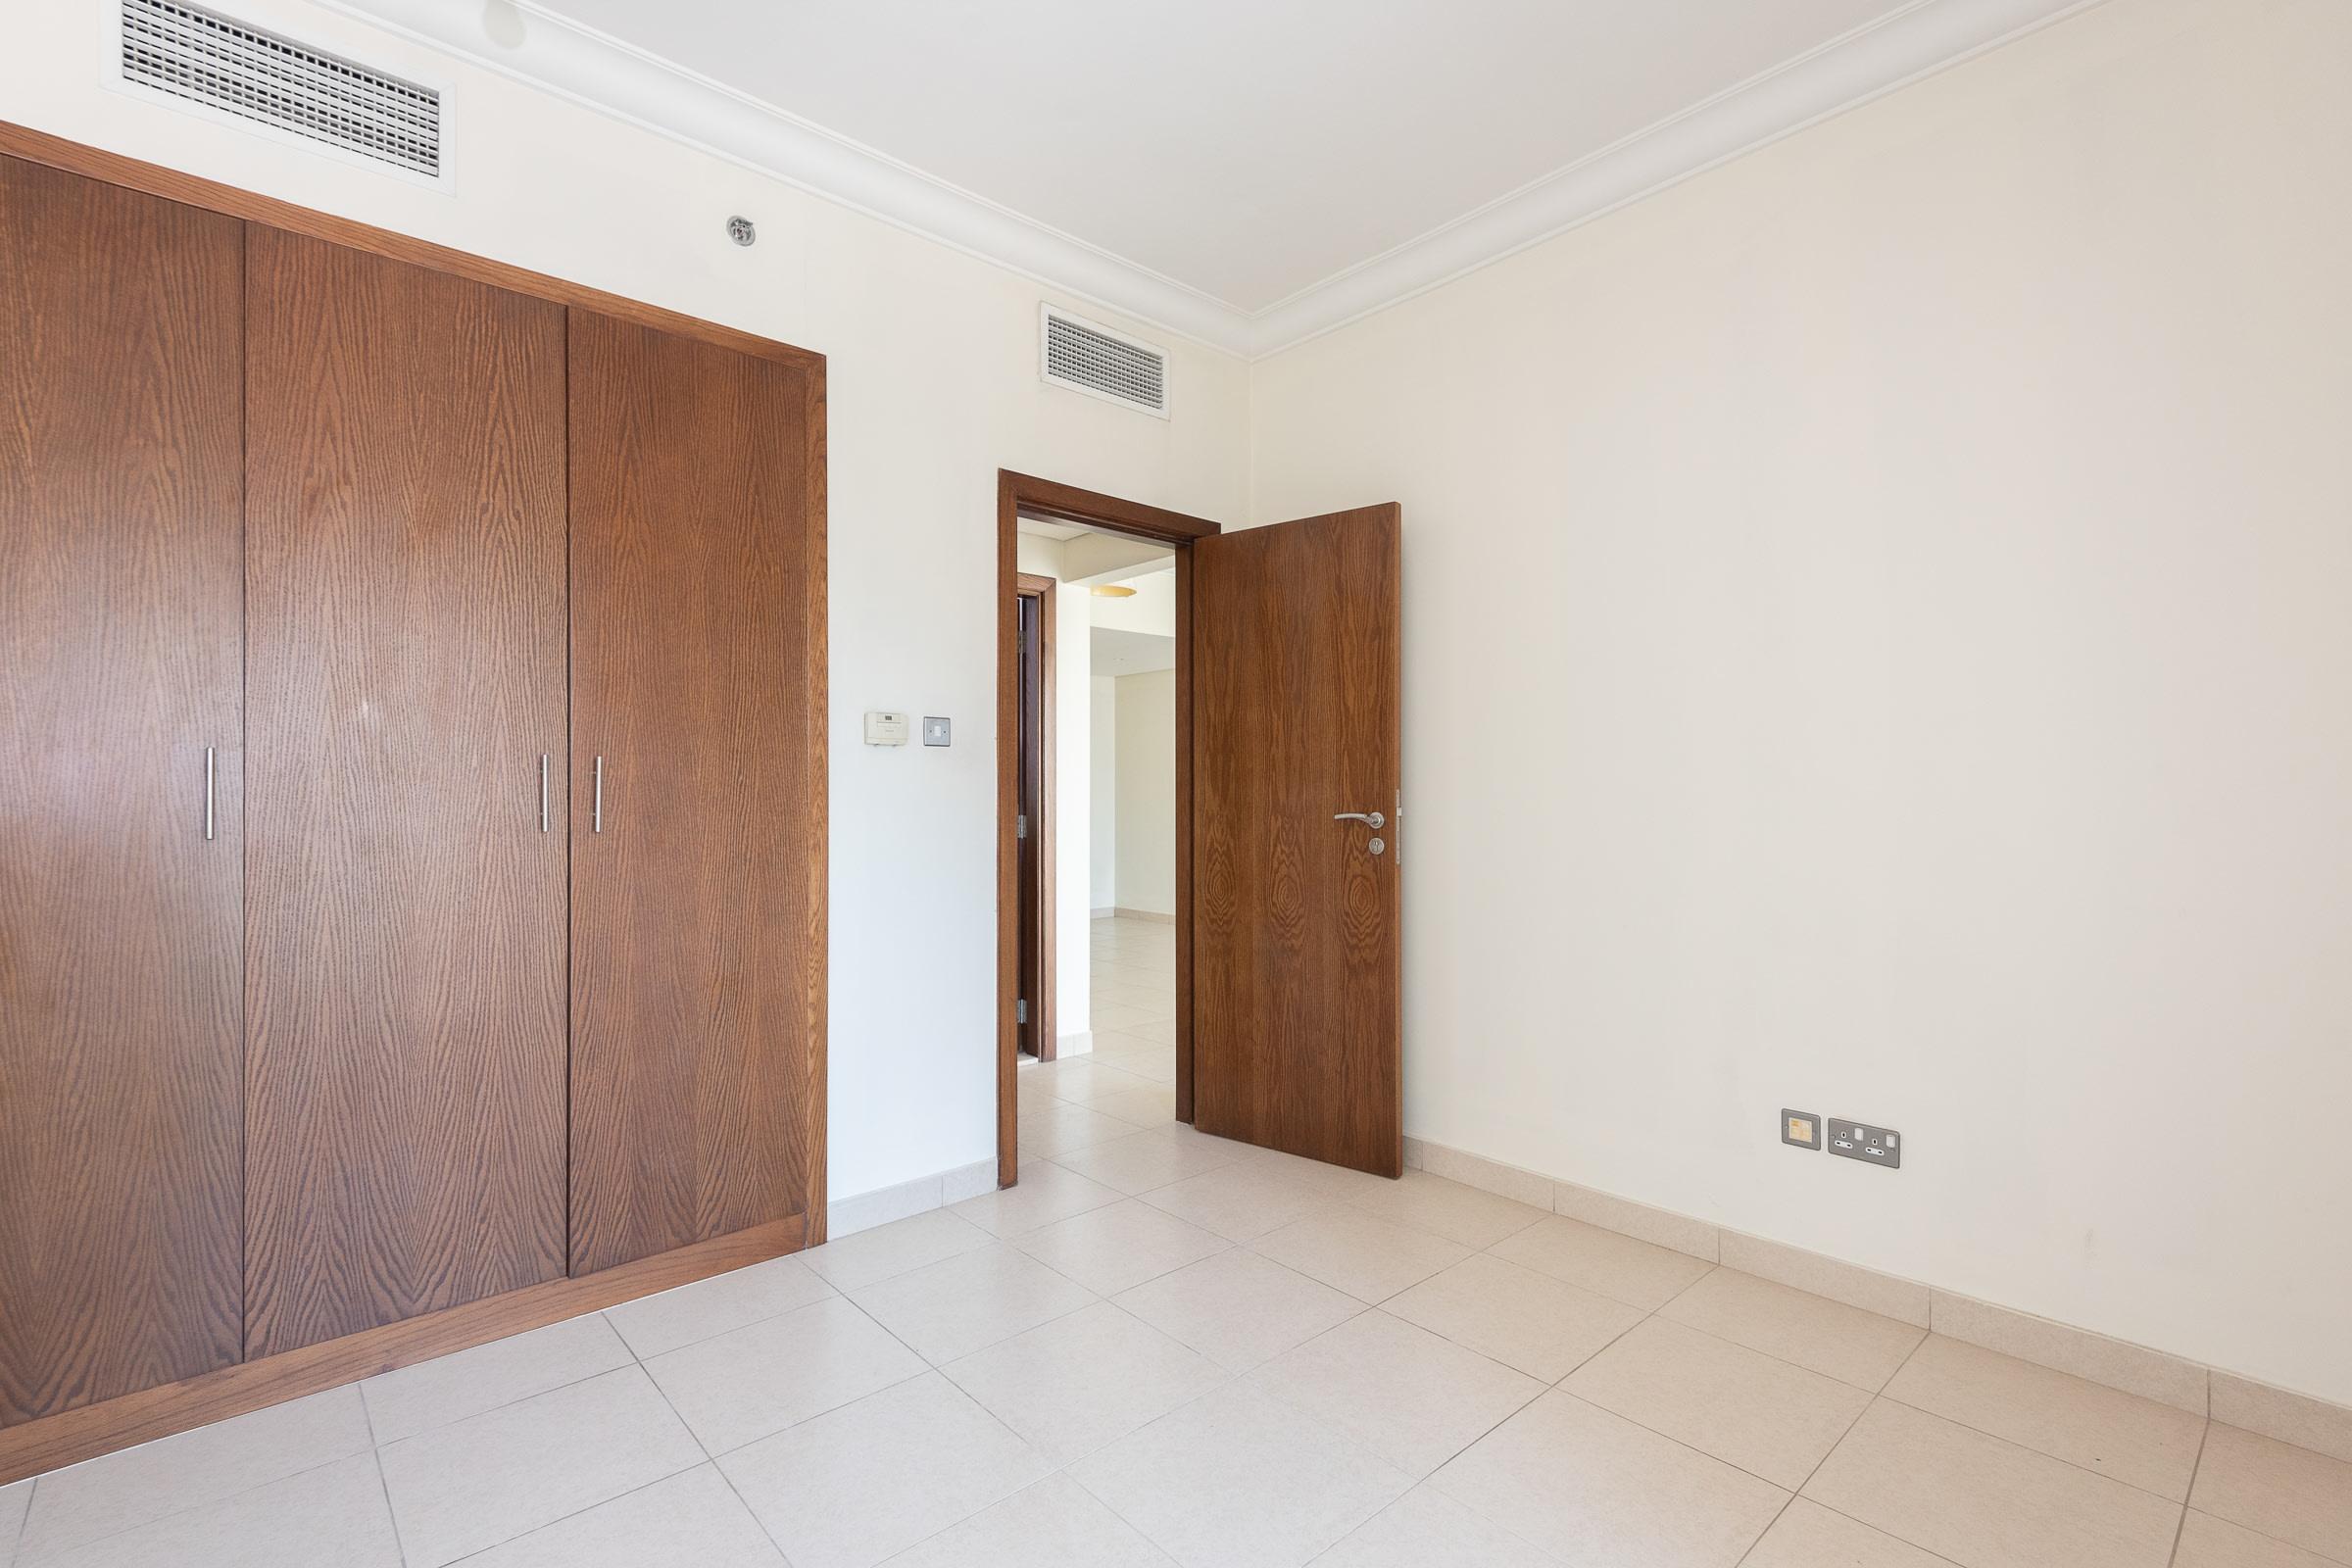 Vacant | Well Priced |  Immaculate 1 Bed